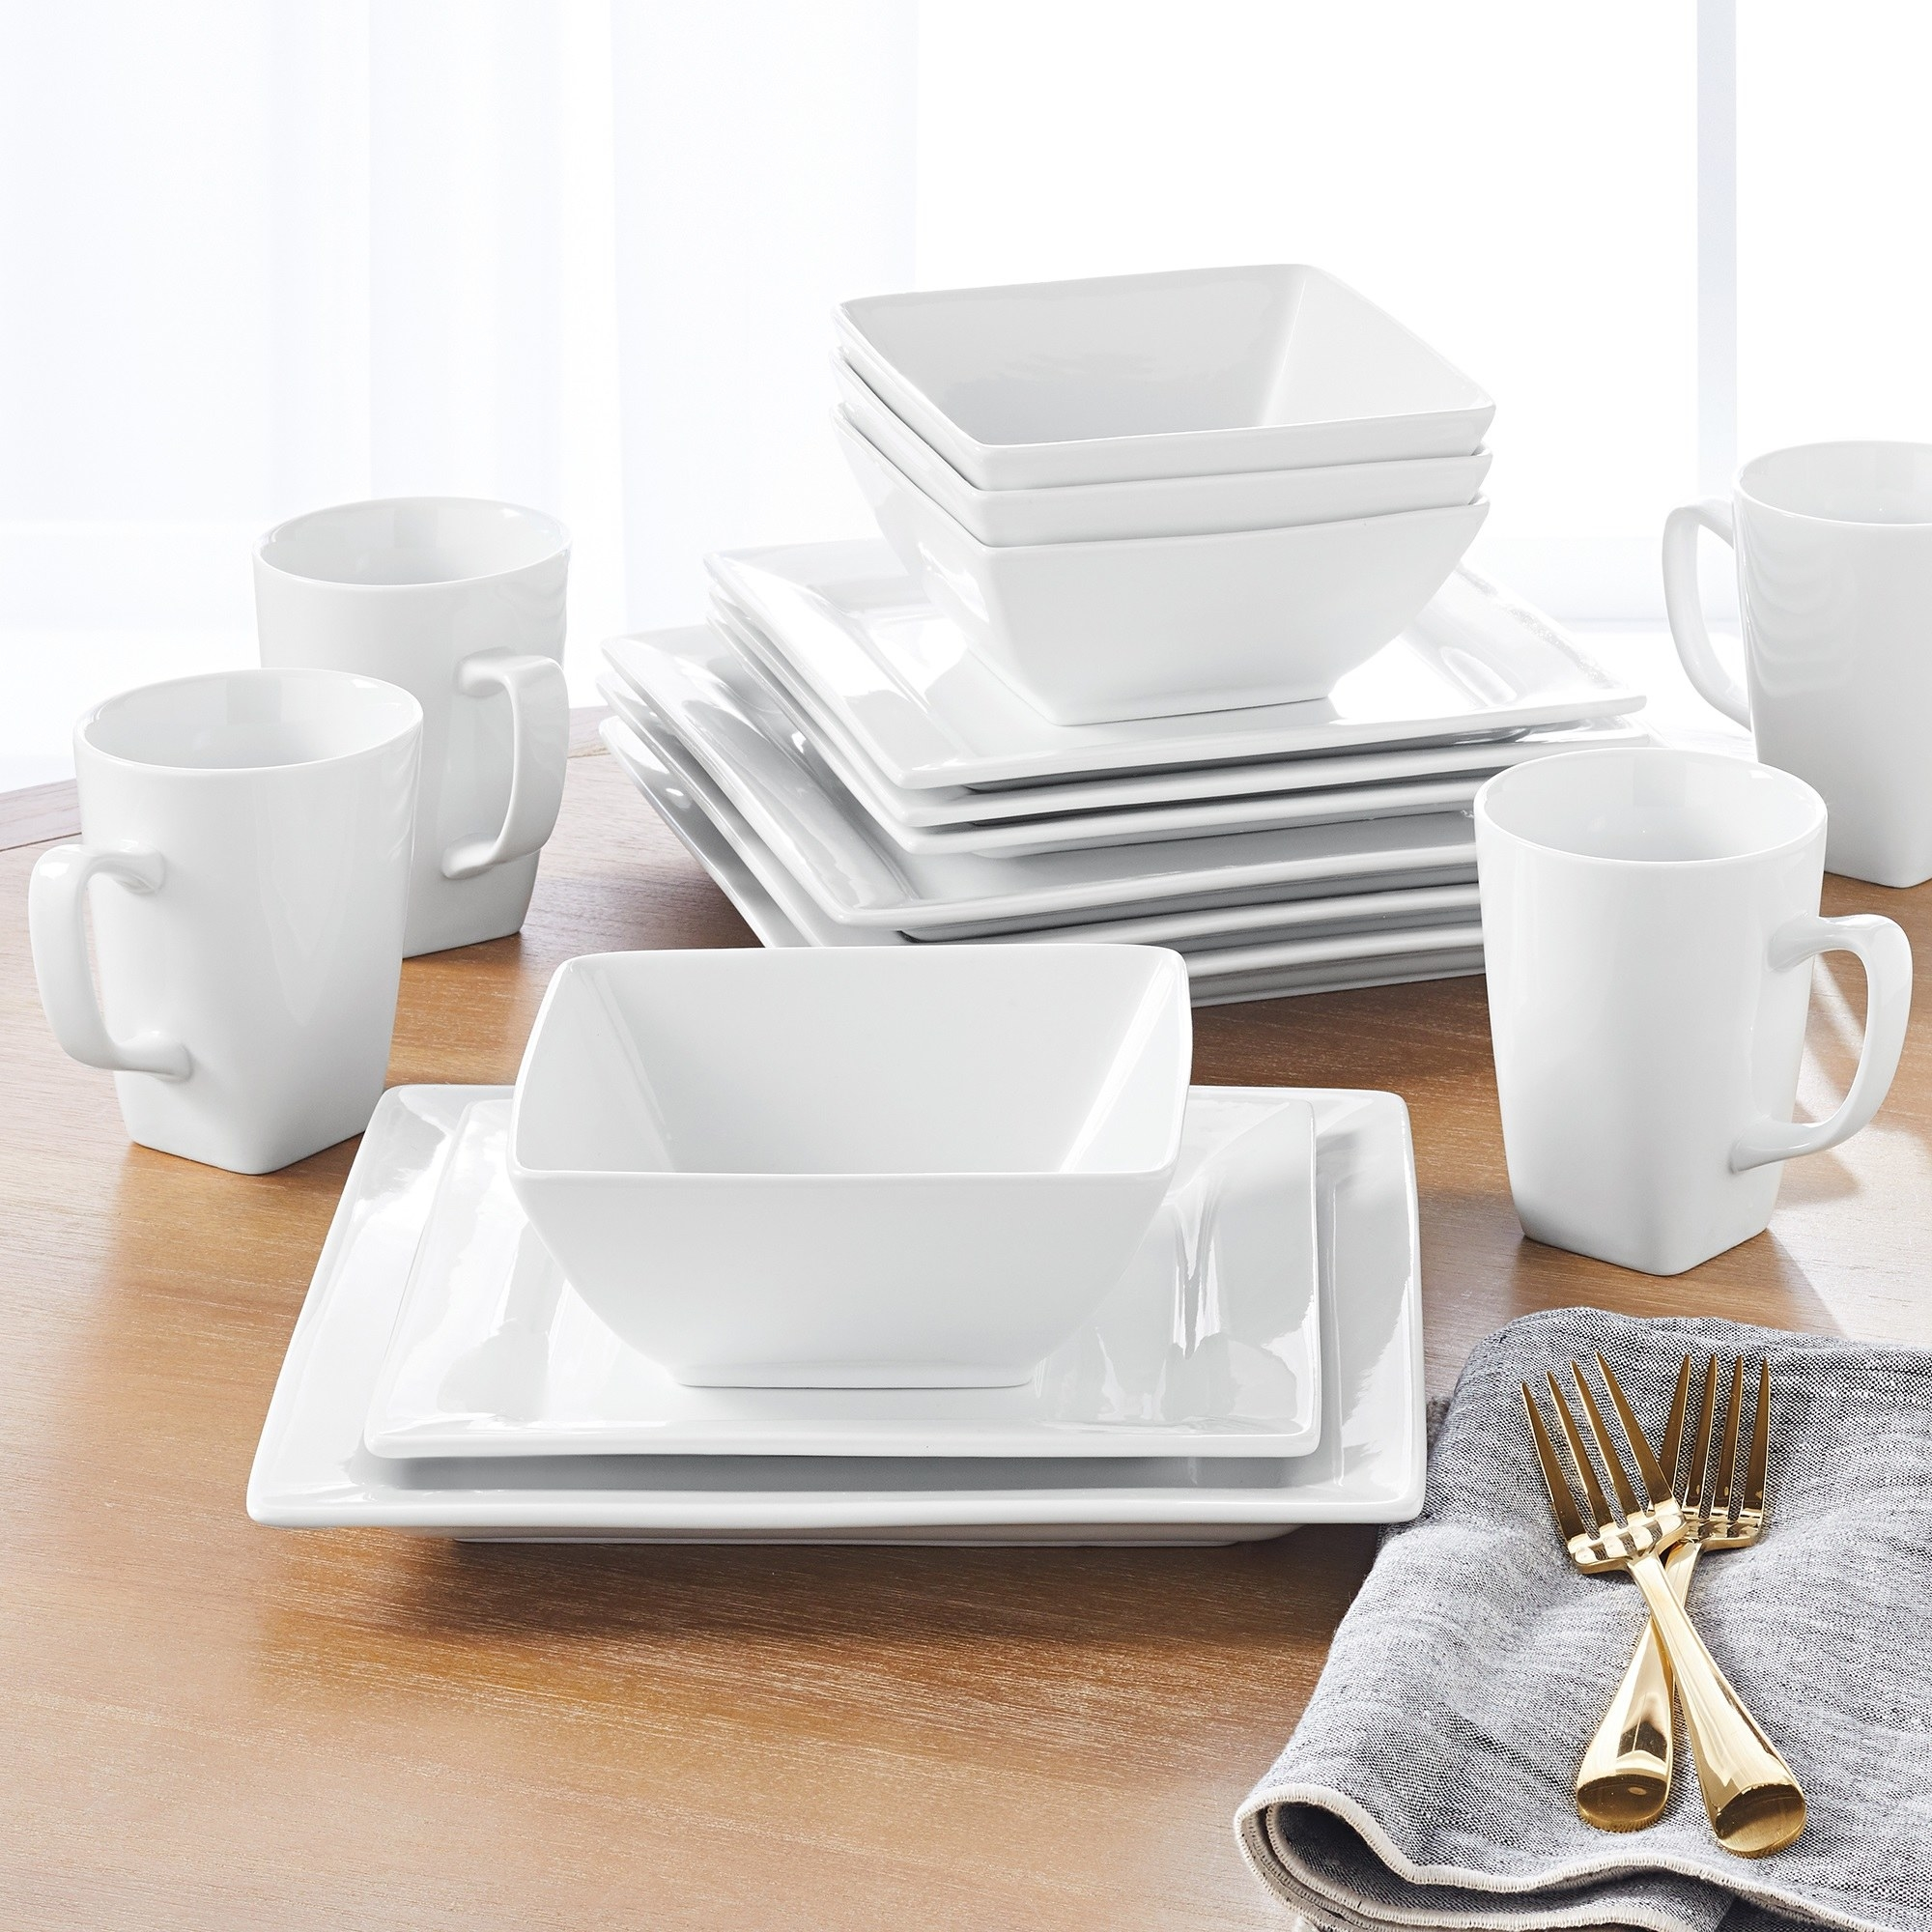 The white dinnerware set